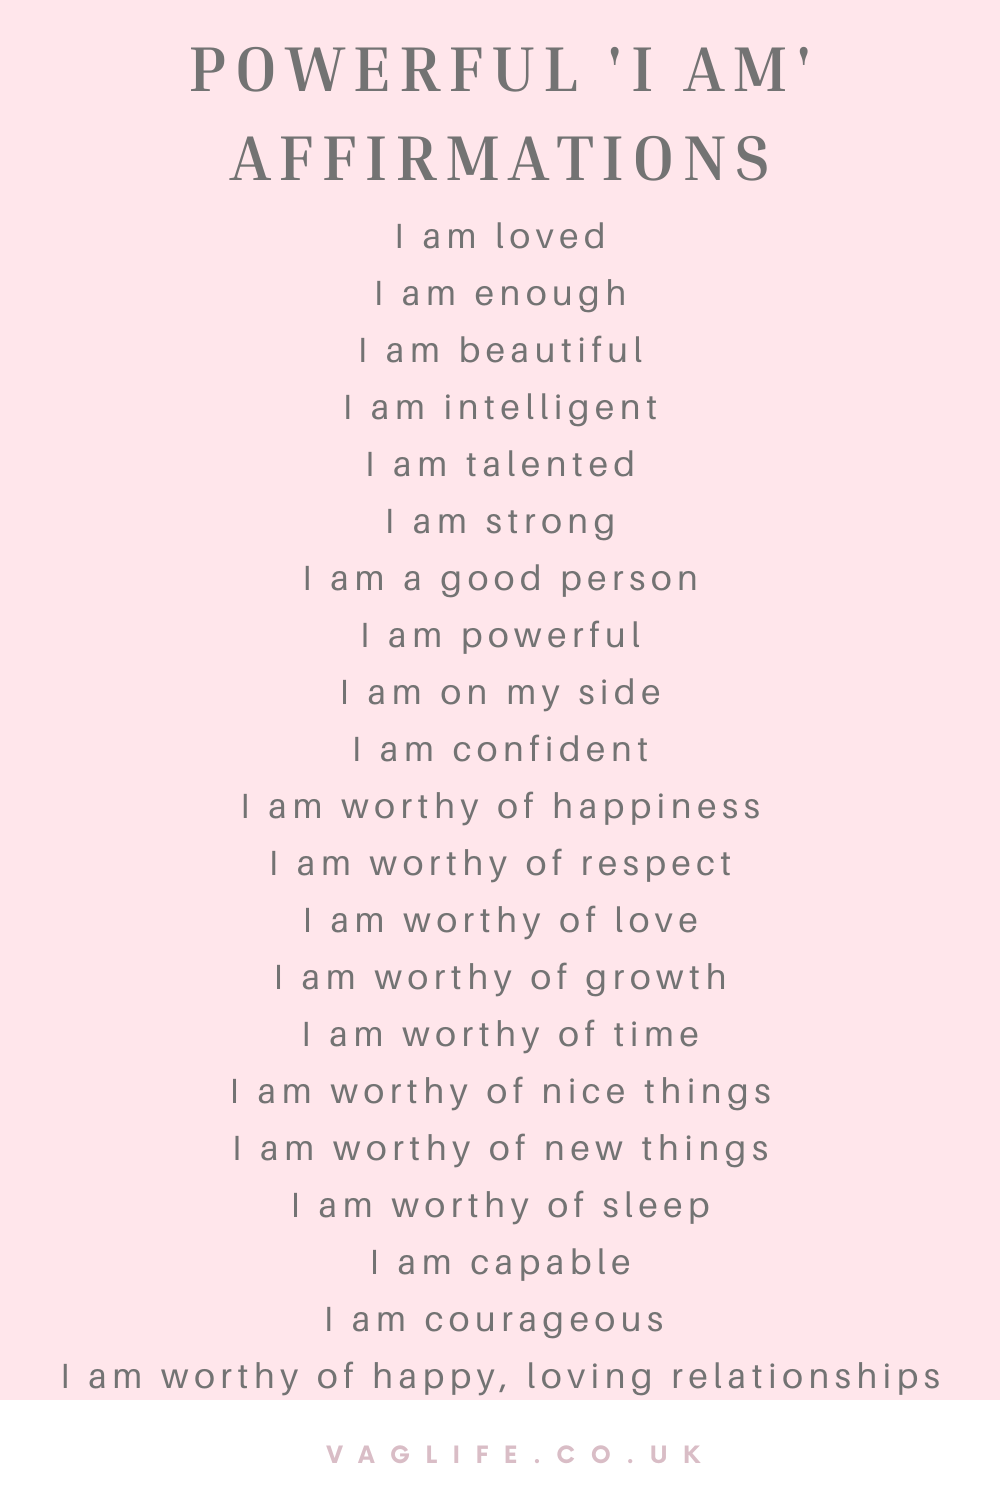 50 Powerful Affirmations To Change Your Mindset - #VagLife